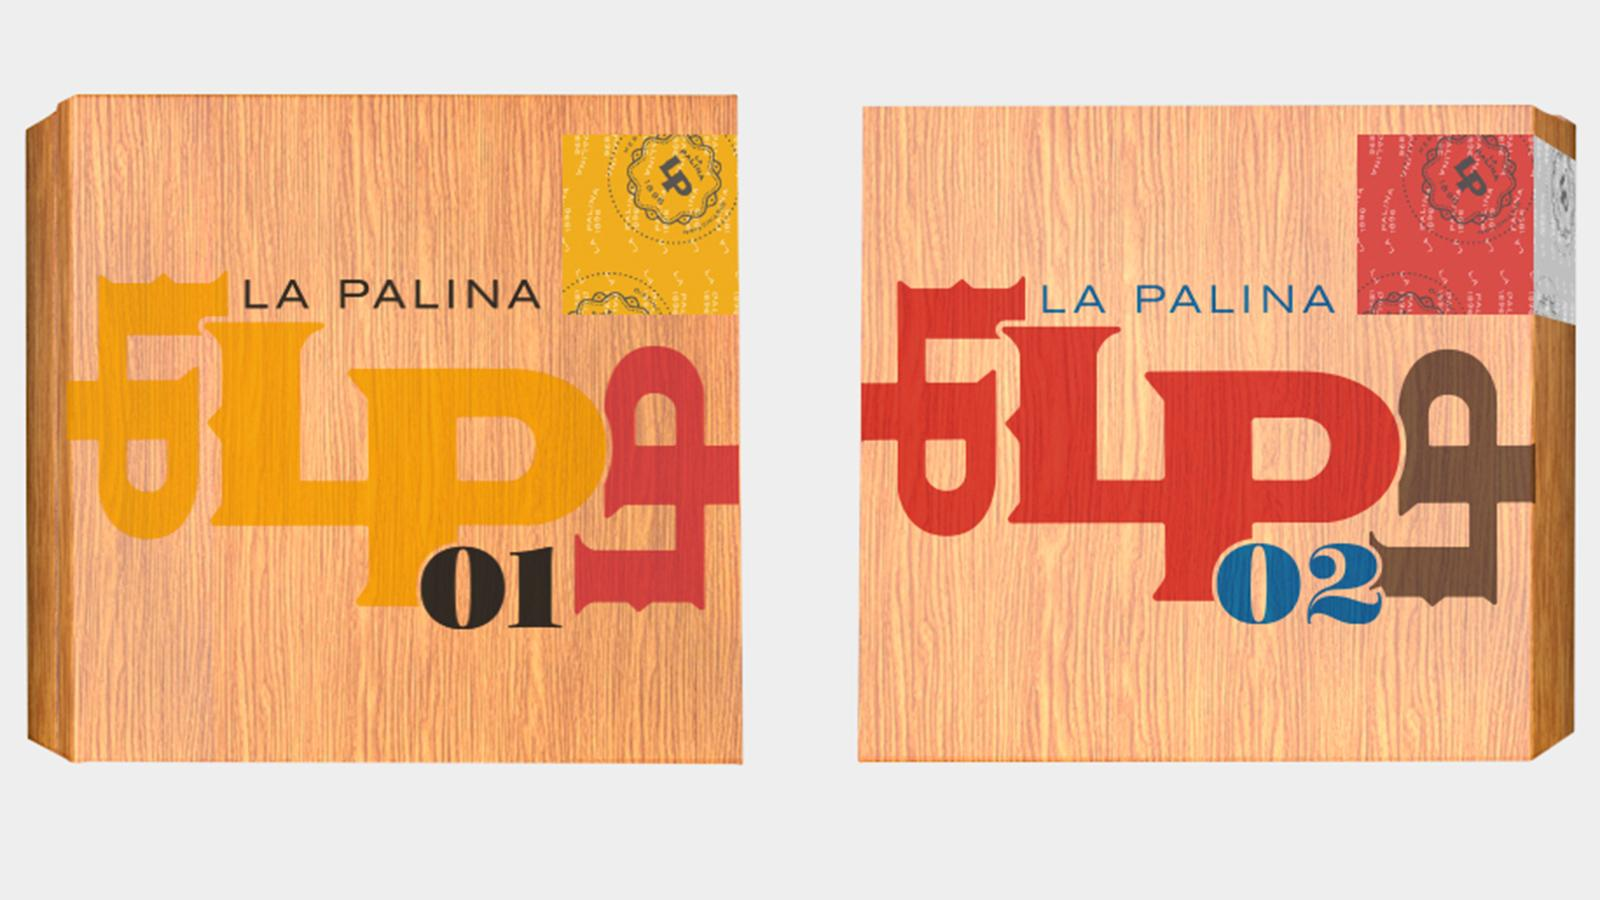 La Palina To Debut New Number Series